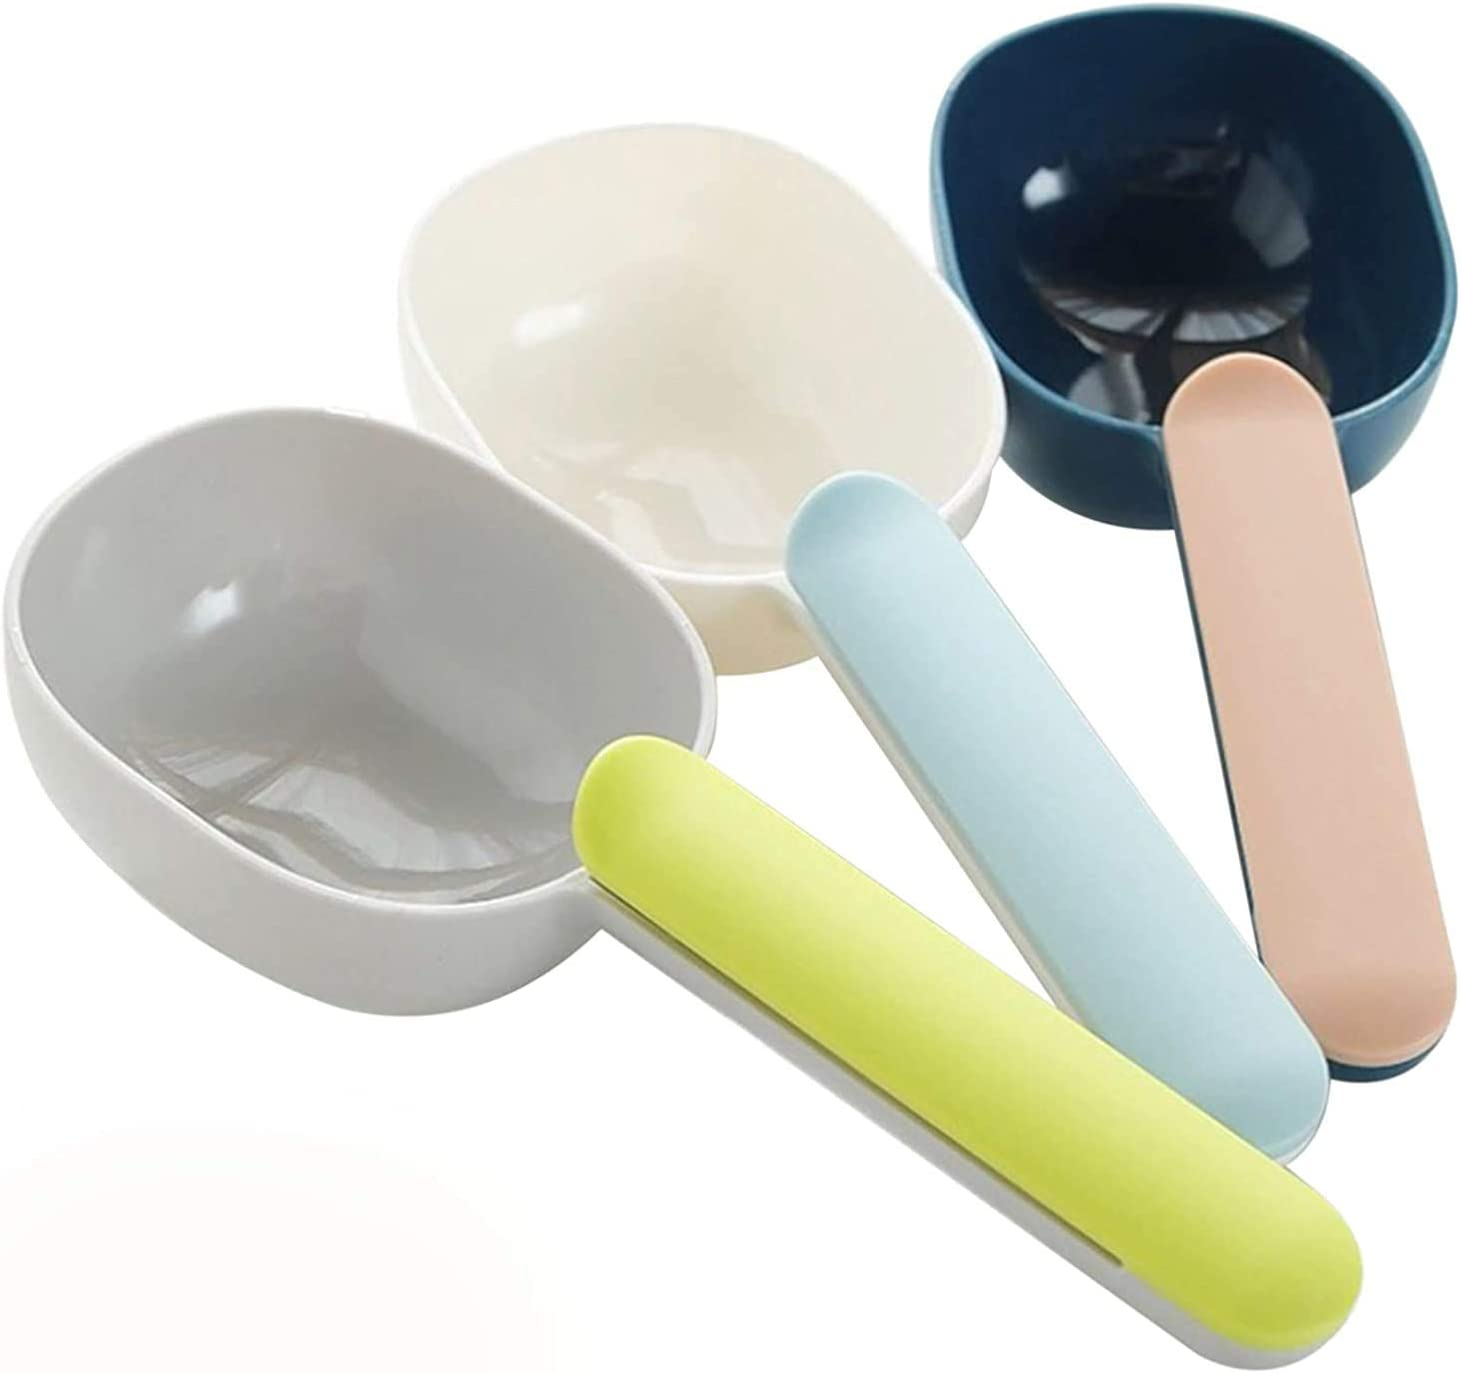 Maubooyu Dog Food Scoop, Plastic Measuring Cup Pet Food Feeding Spoon 1 Cup Size with Ergonomic Bag Clip Handle for Dry Liquid Dogs Cats Birds and Kitchen Seasonings(3 Pack)